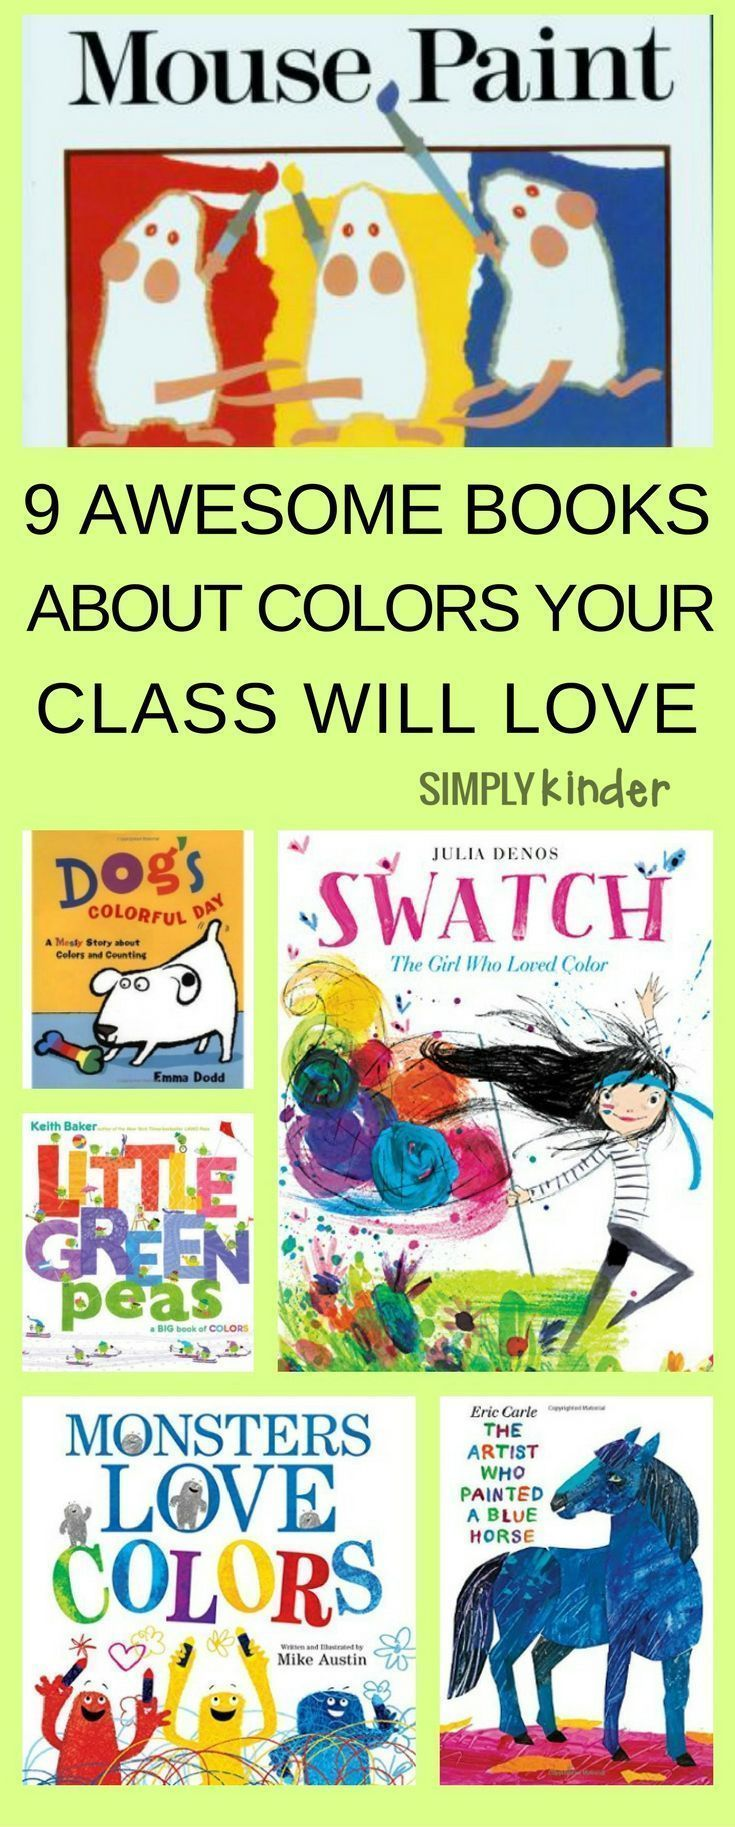 These fun books about color are PERFECT for preschool and Kindergarten Students learning color words. Continue the fun with ideas for color activities, games and lively songs (includes free printables).